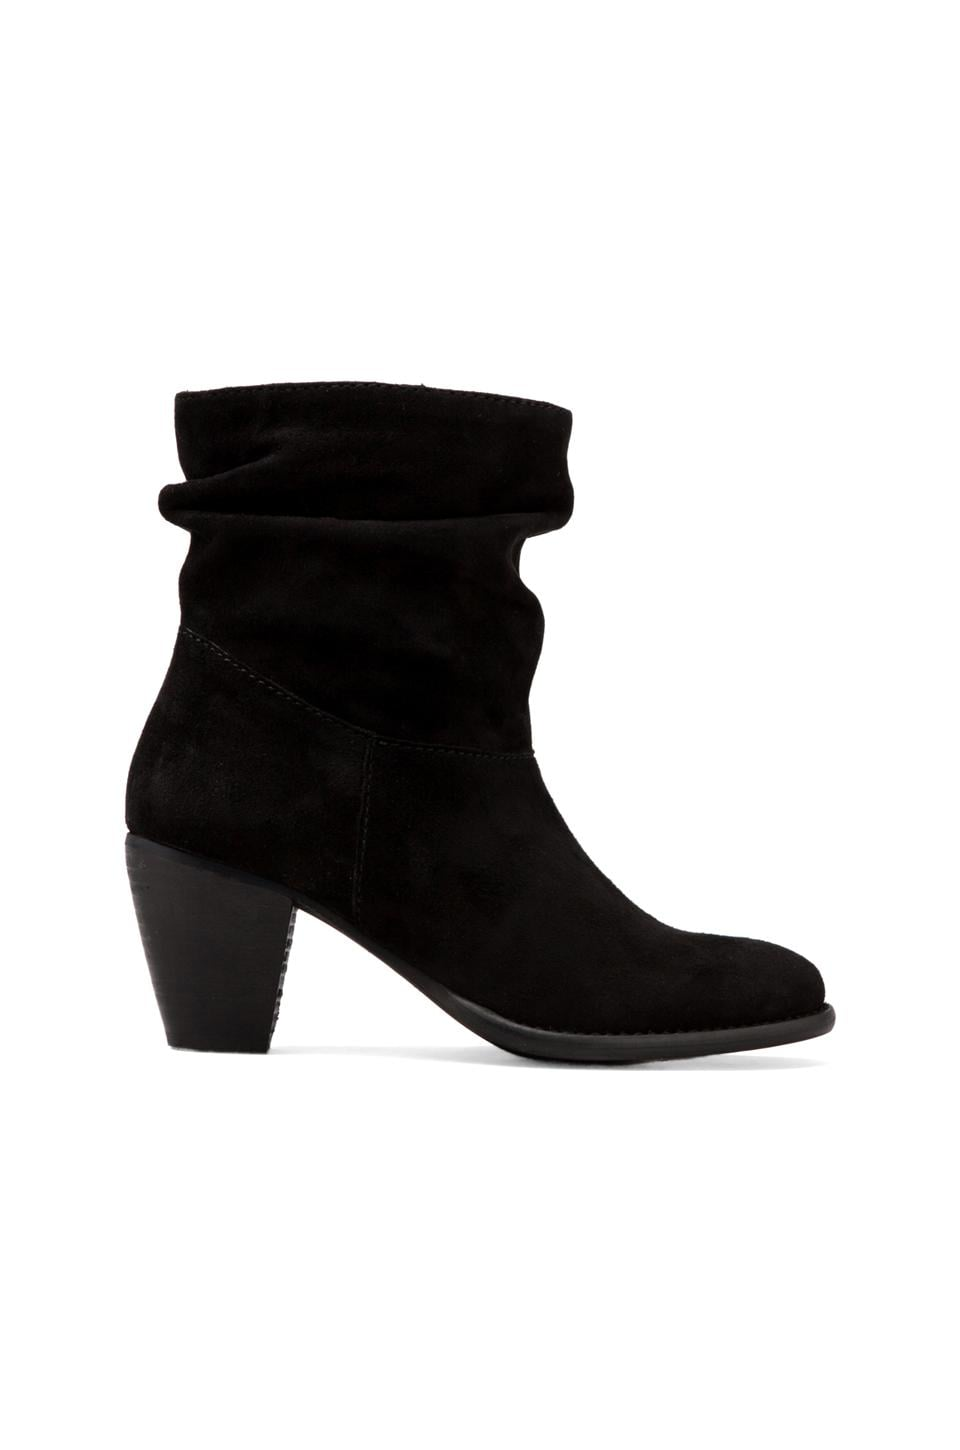 Steven Welded Bootie in Black Suede